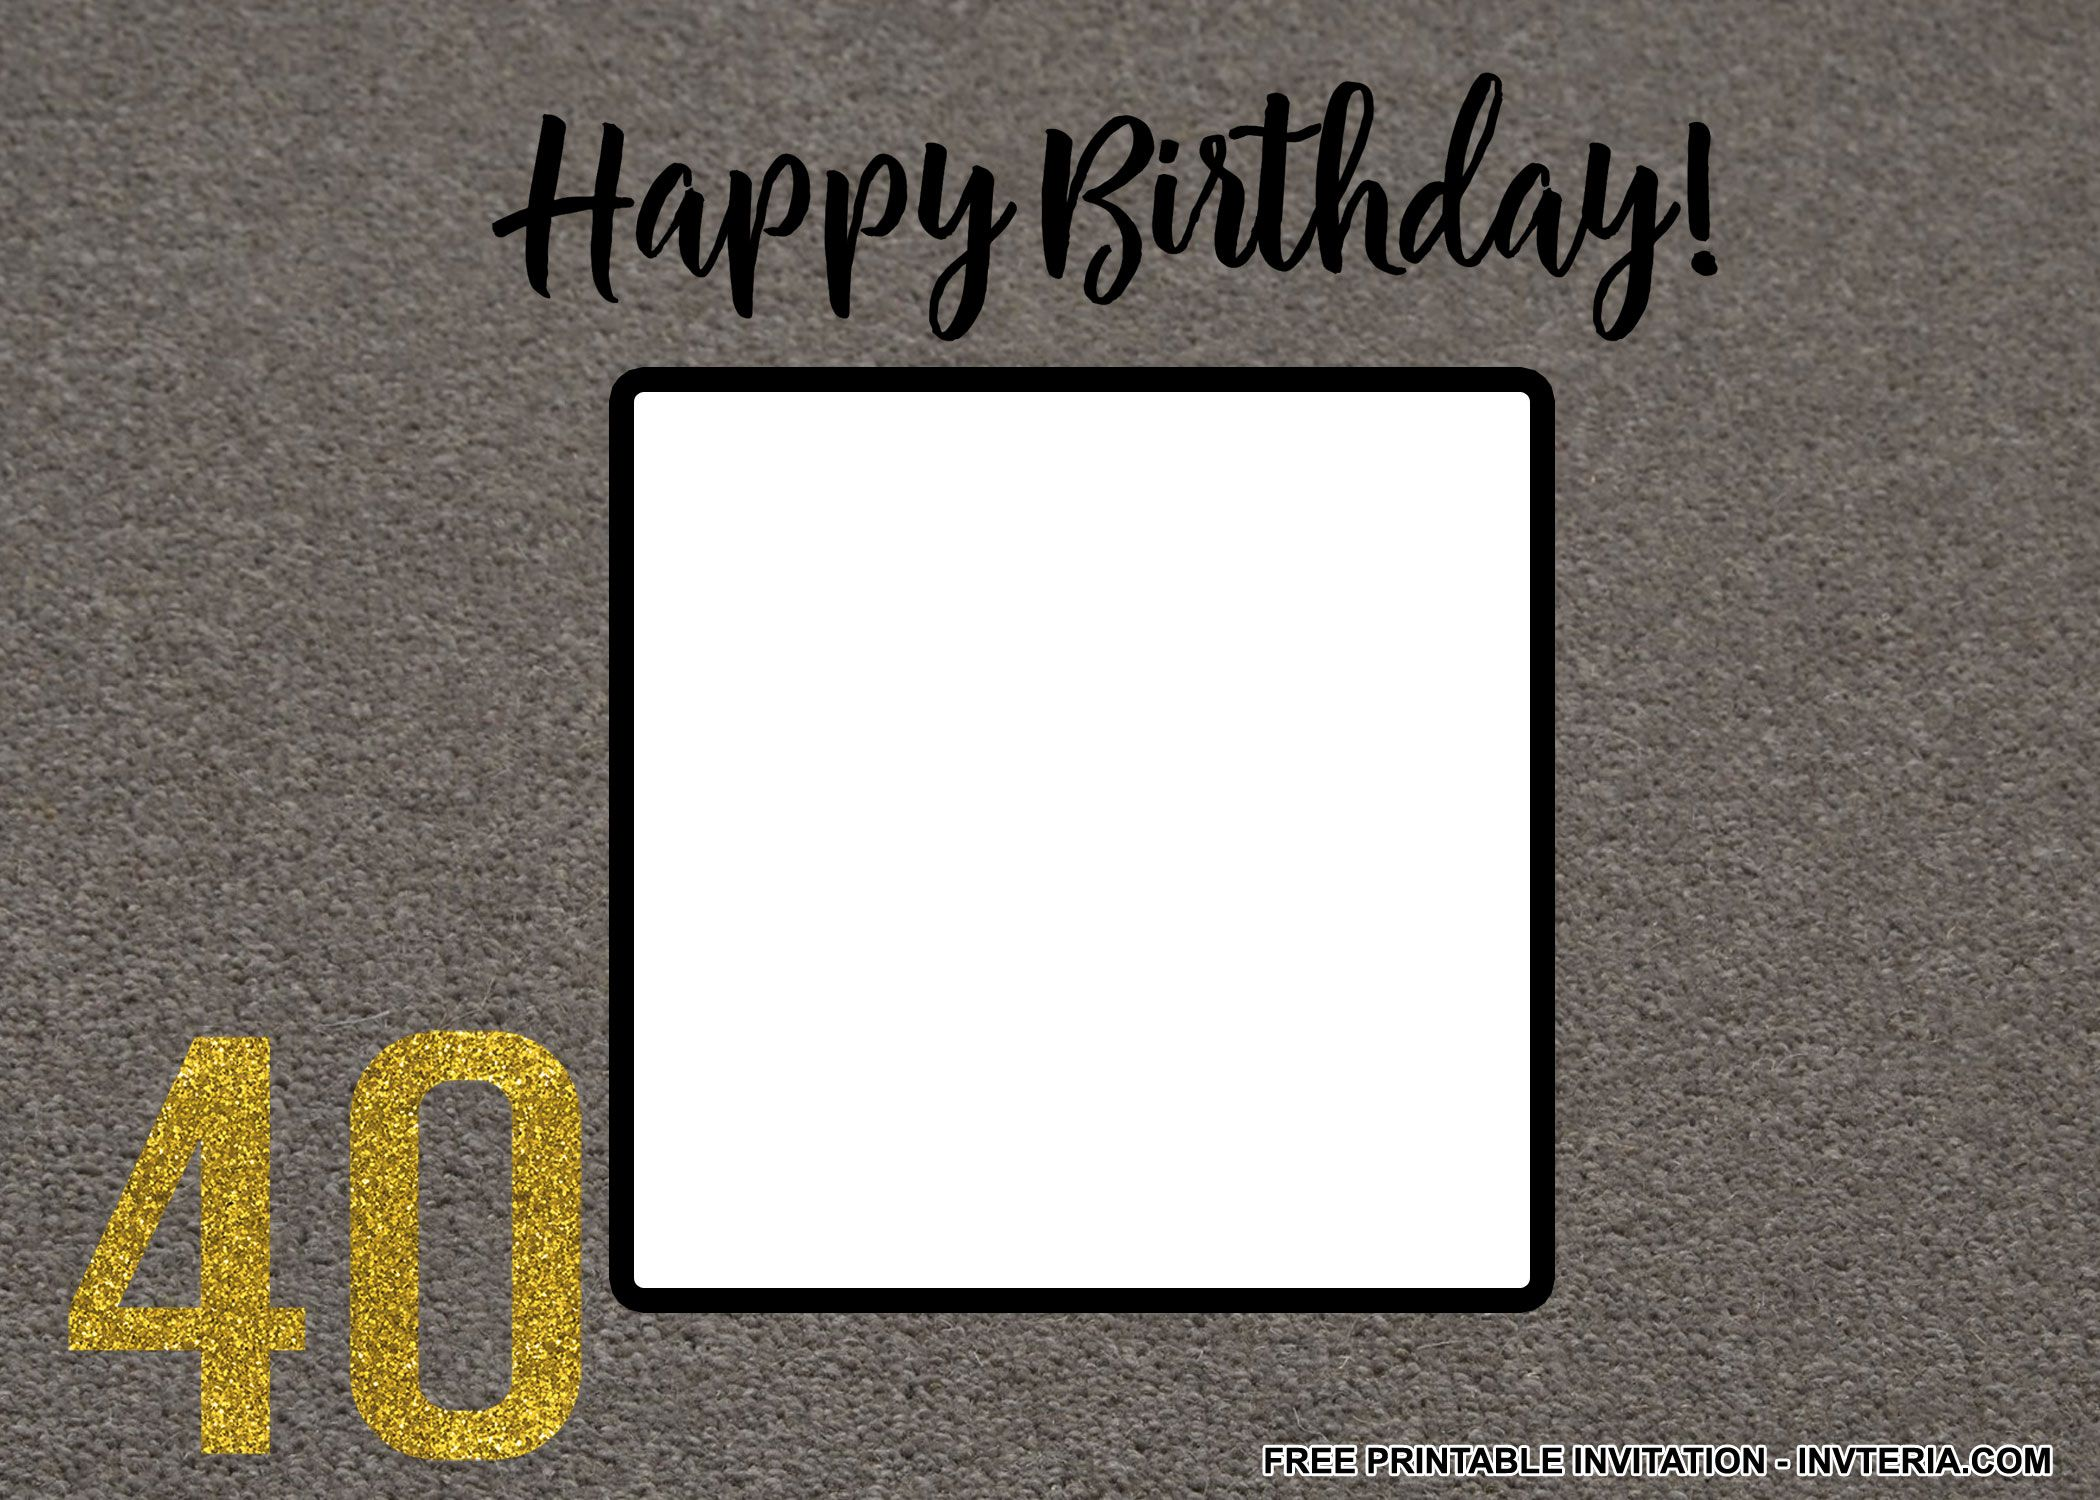 AWESOME BEST FREE PRINTABLE 40TH BIRTHDAY INVITATIONS FOR MEN IDEA